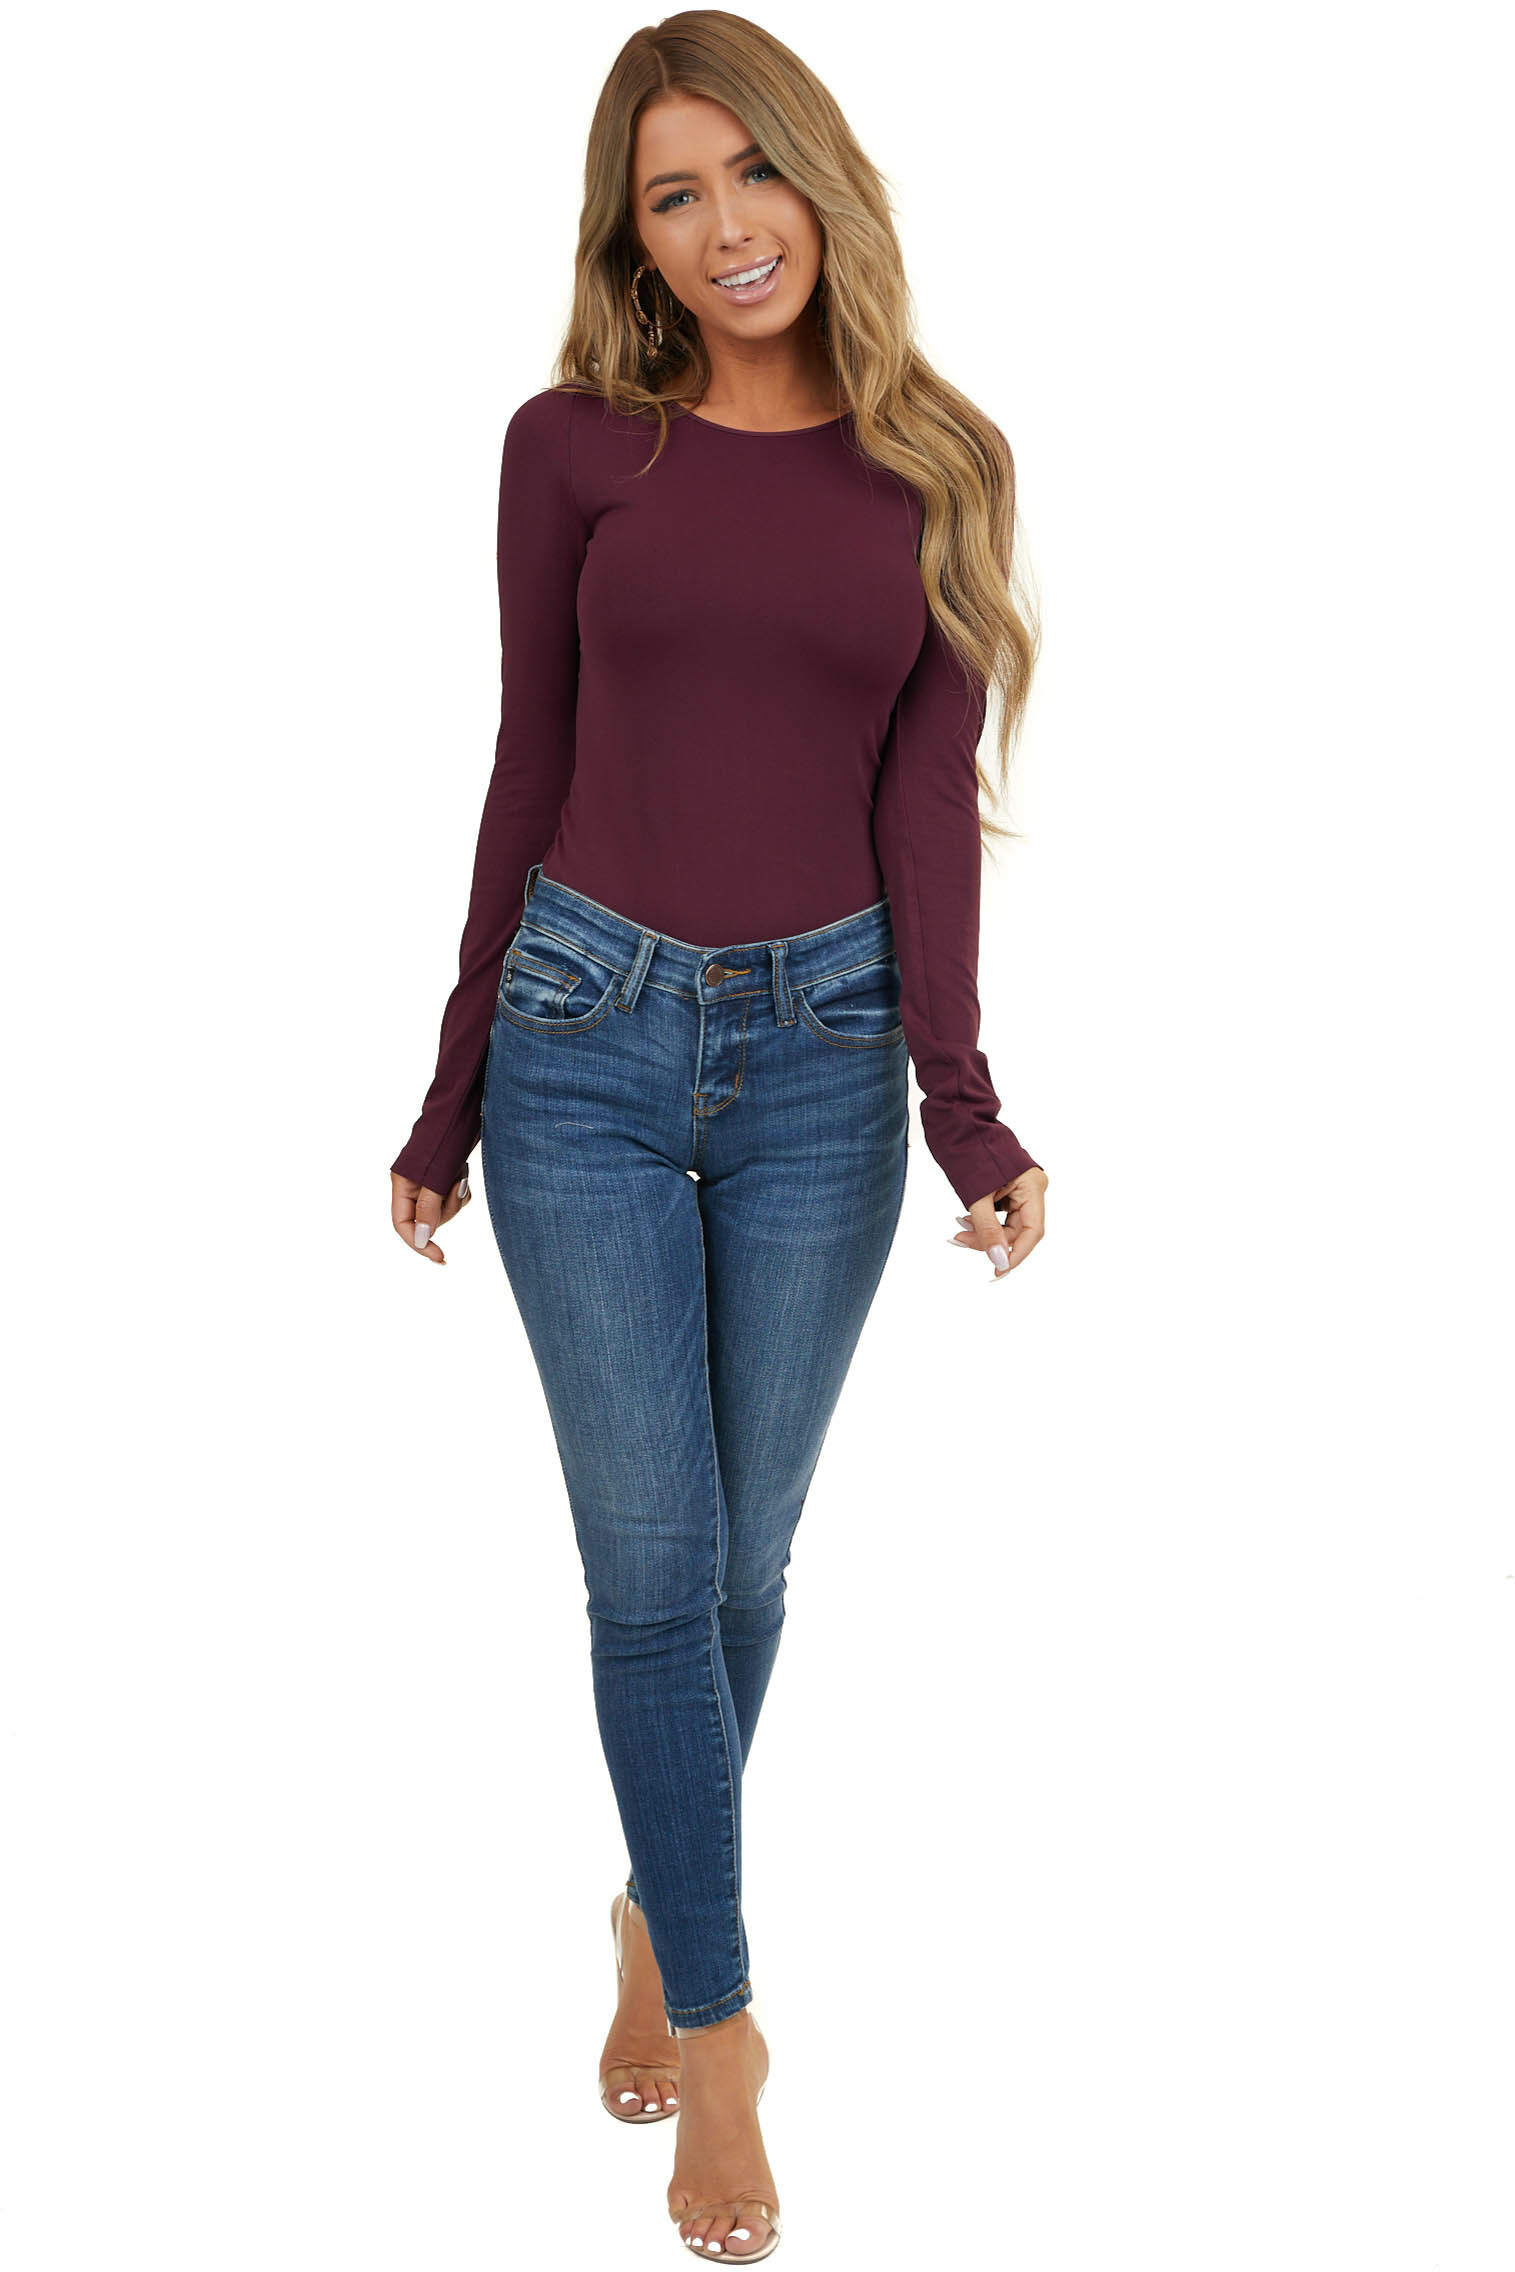 Eggplant Purple Seamless Long Sleeve Crew Neck Top